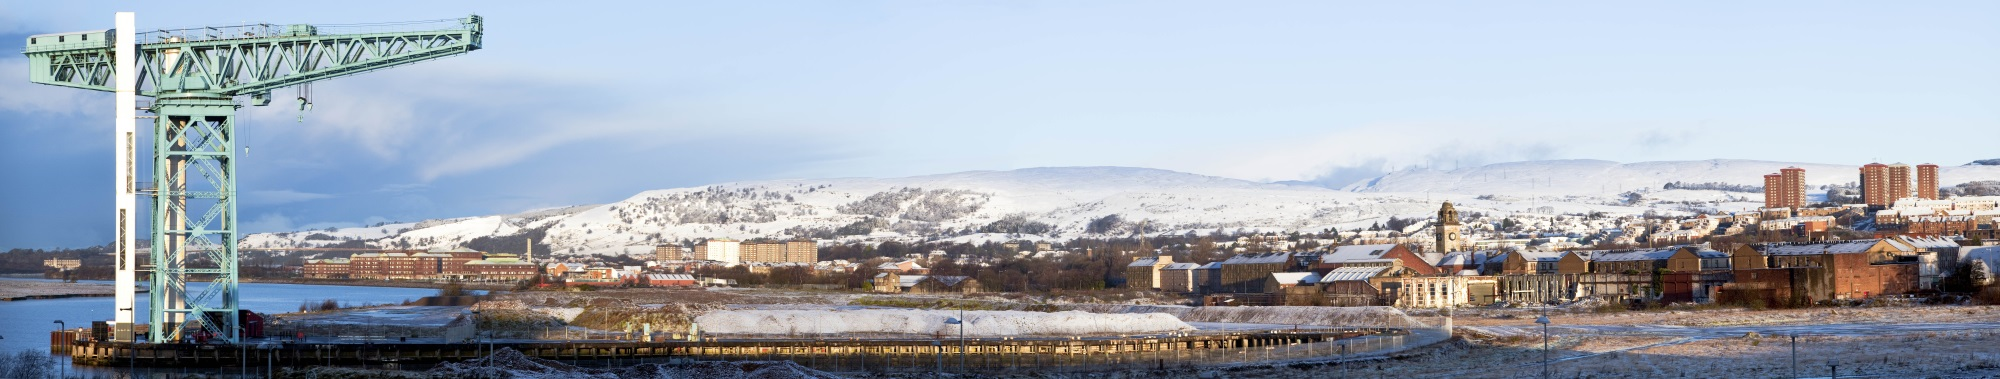 Titan Crane and Clydebank covered in snow